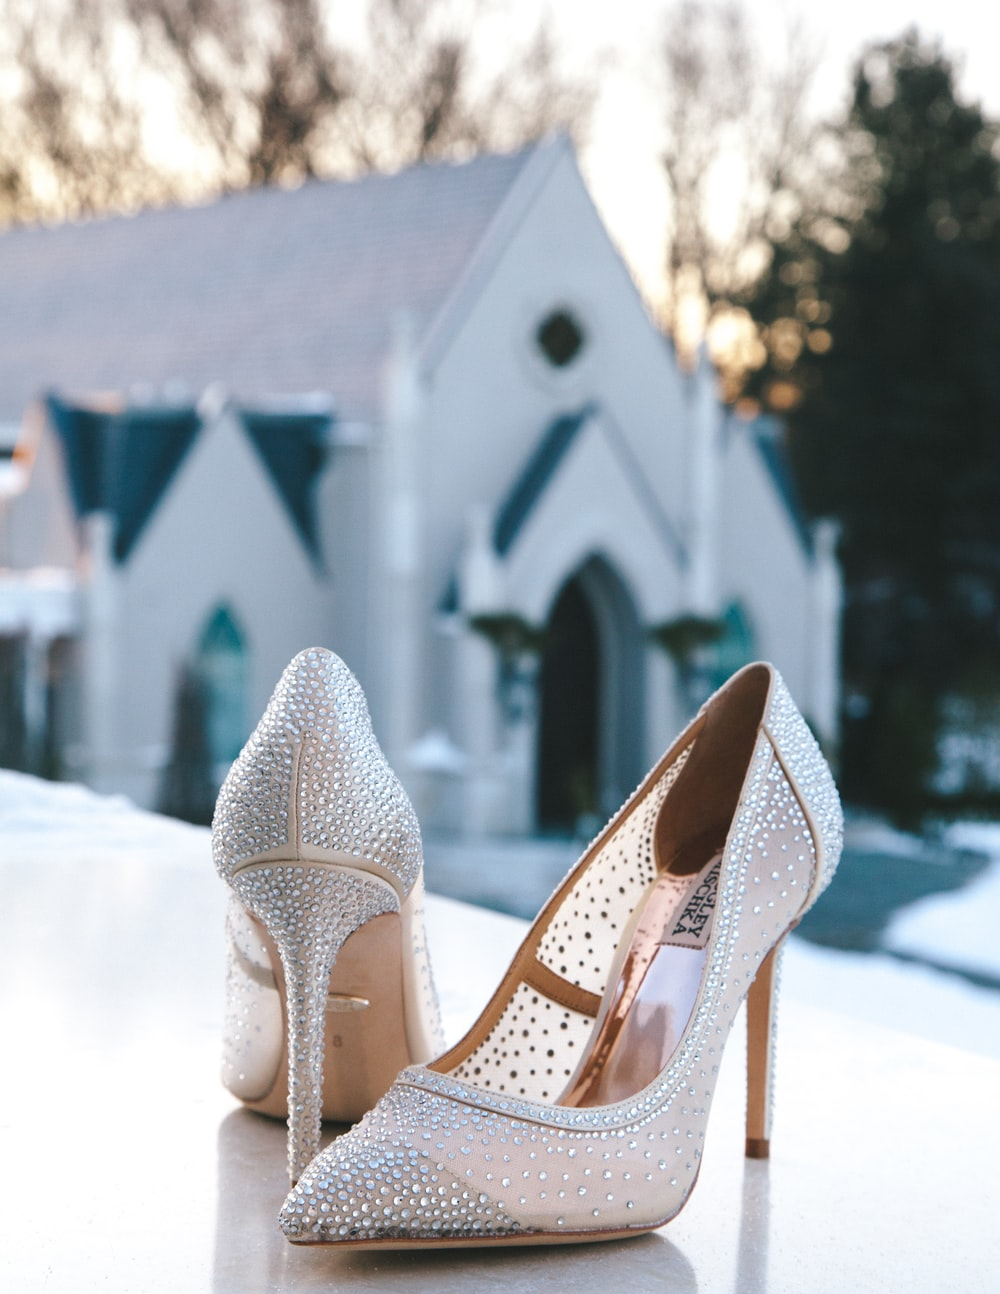 pair of glitter white pointed-toe pumps